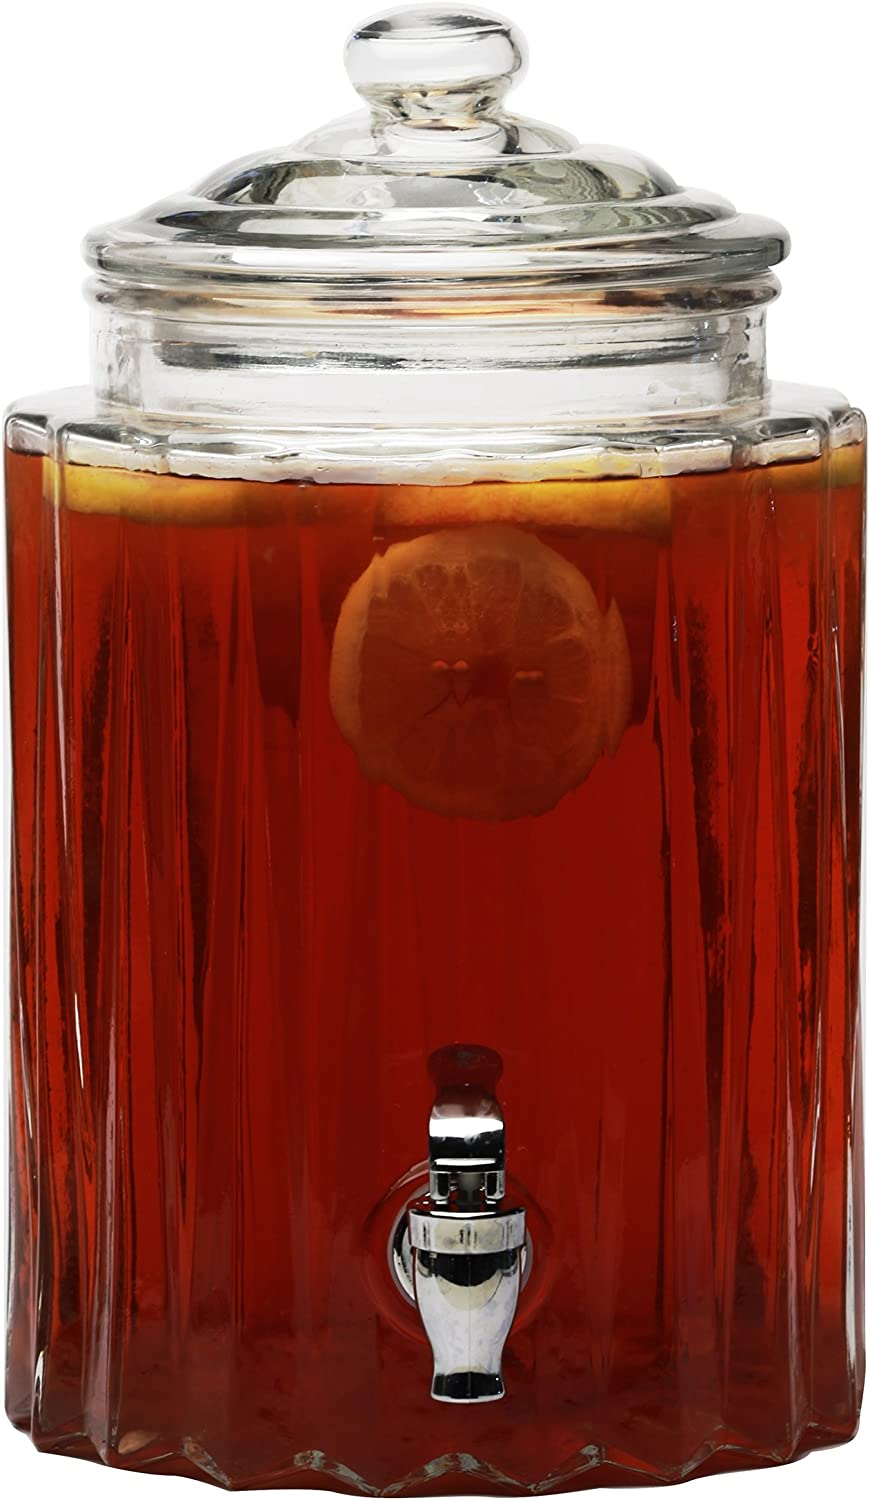 Circleware Glass Beverage Dispenser with Lid, Fun Party Entertainment Home & Kitchen Glassware Water Pitcher for Juice, Beer, Kombucha & Cold Drinks, 1.4 gal